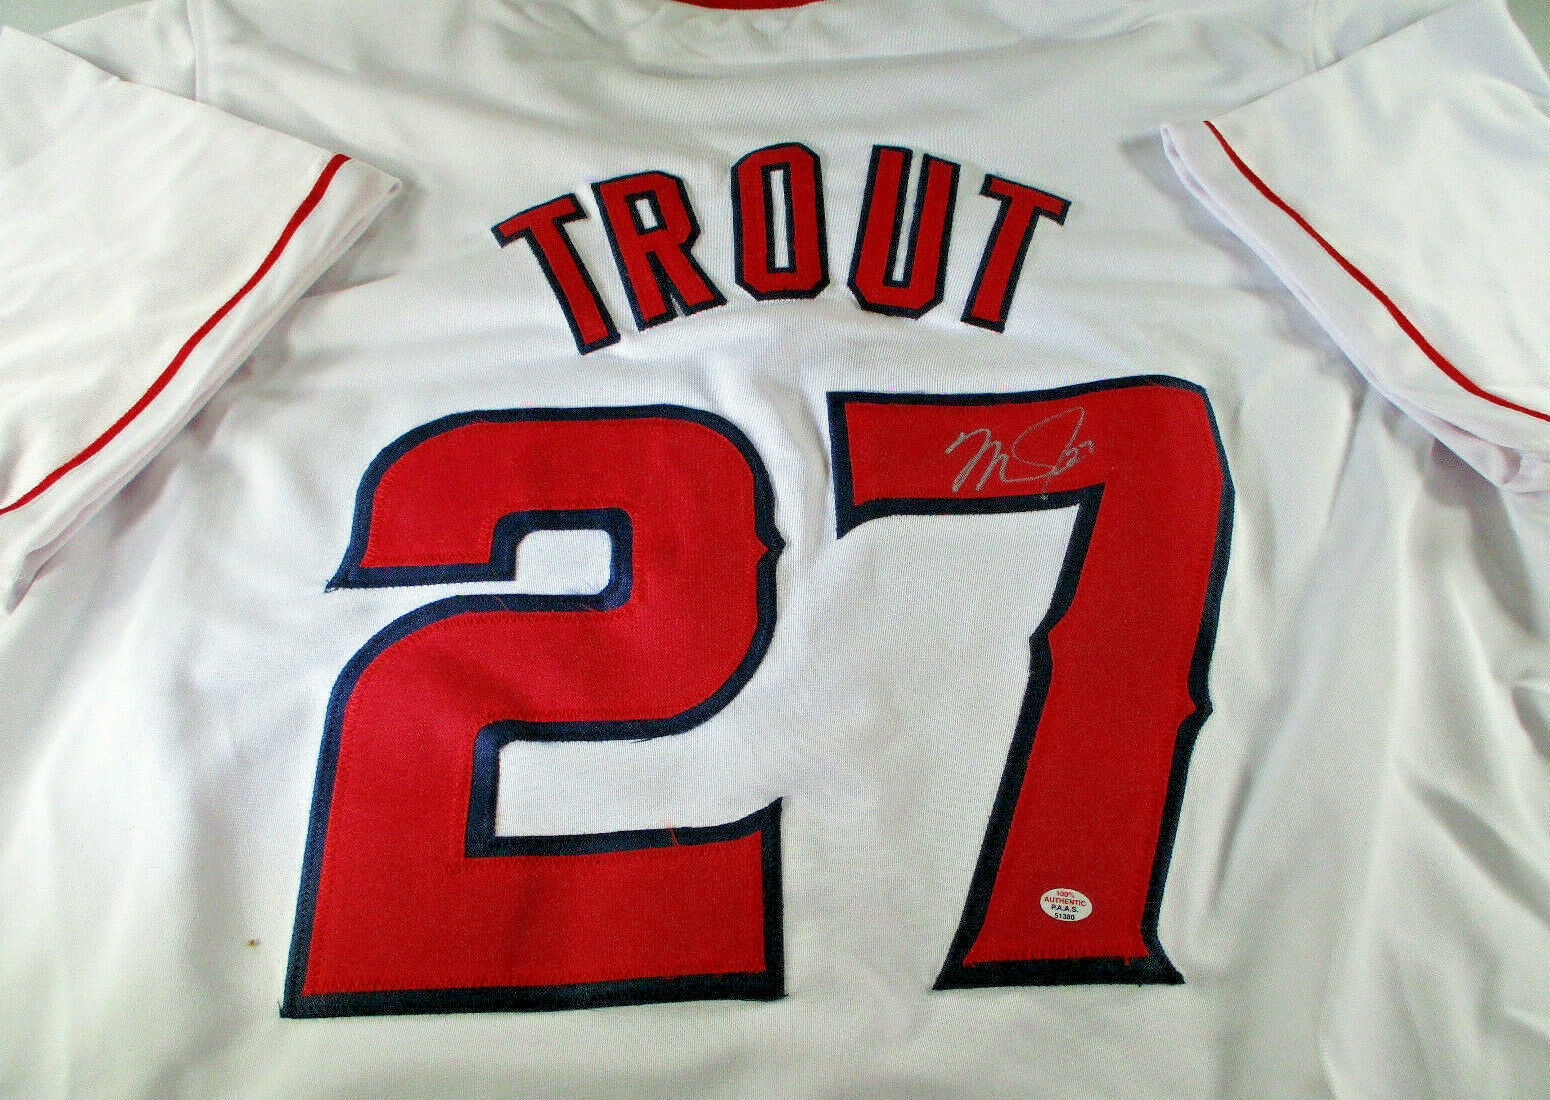 MIKE TROUT / AUTOGRAPHED LOS ANGELES ANGELS RED CUSTOM BASEBALL JERSEY / COA